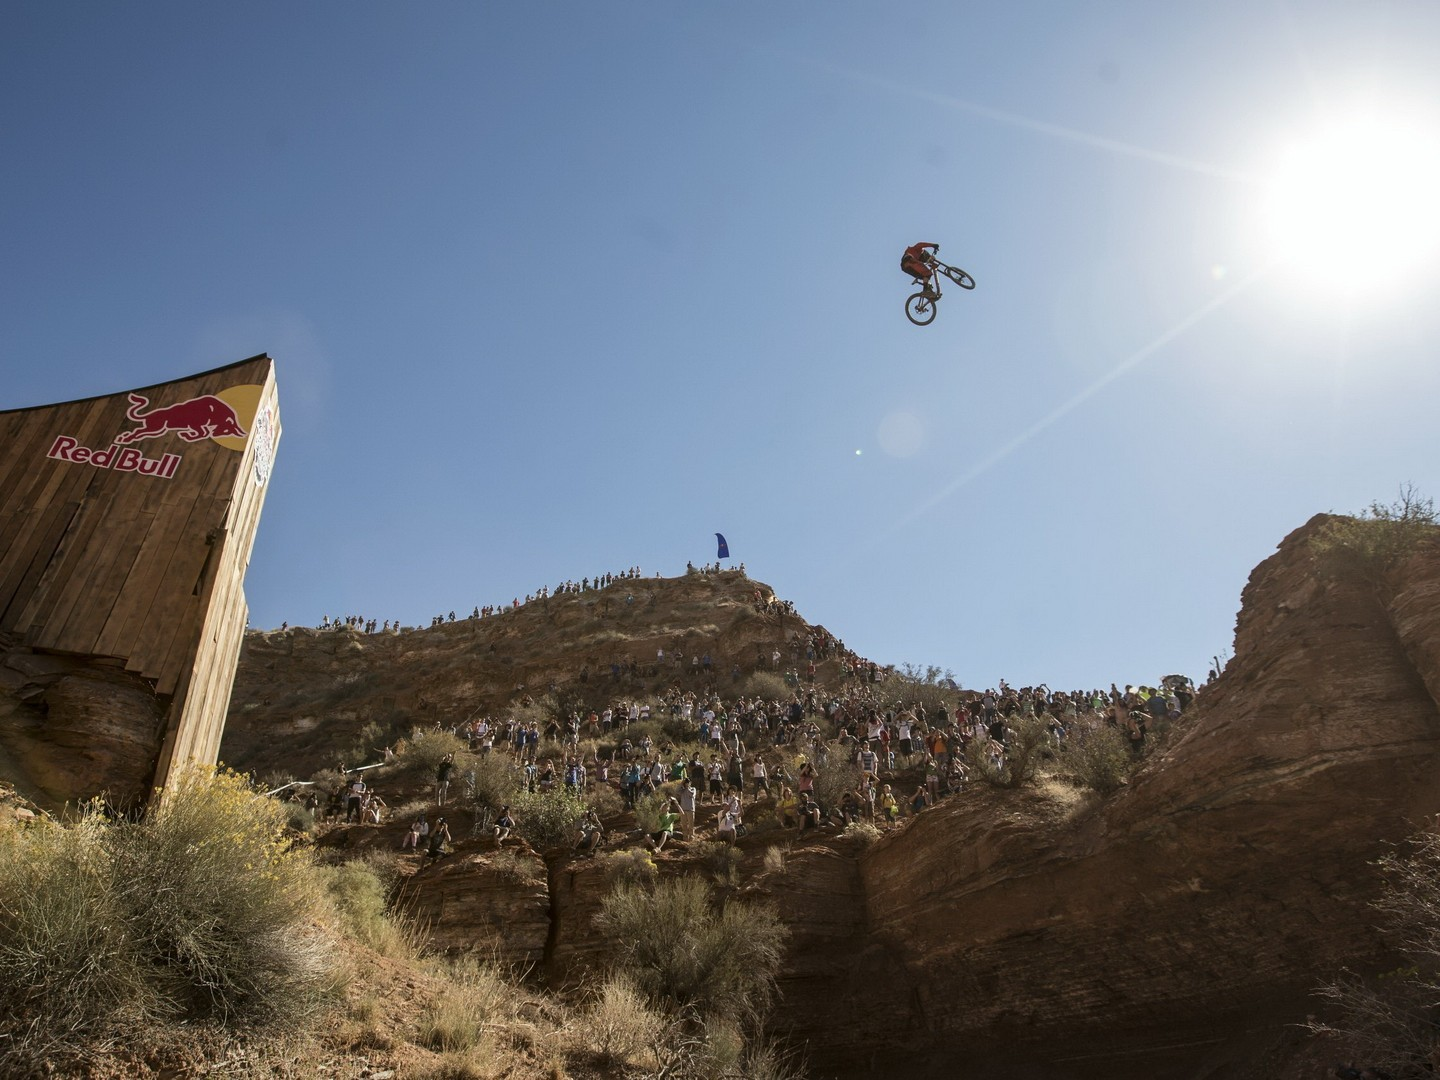 Red Bull Rampage >> Bicycles sports extreme motorbikes red bull rampage wallpaper | AllWallpaper.in #6742 | PC | en